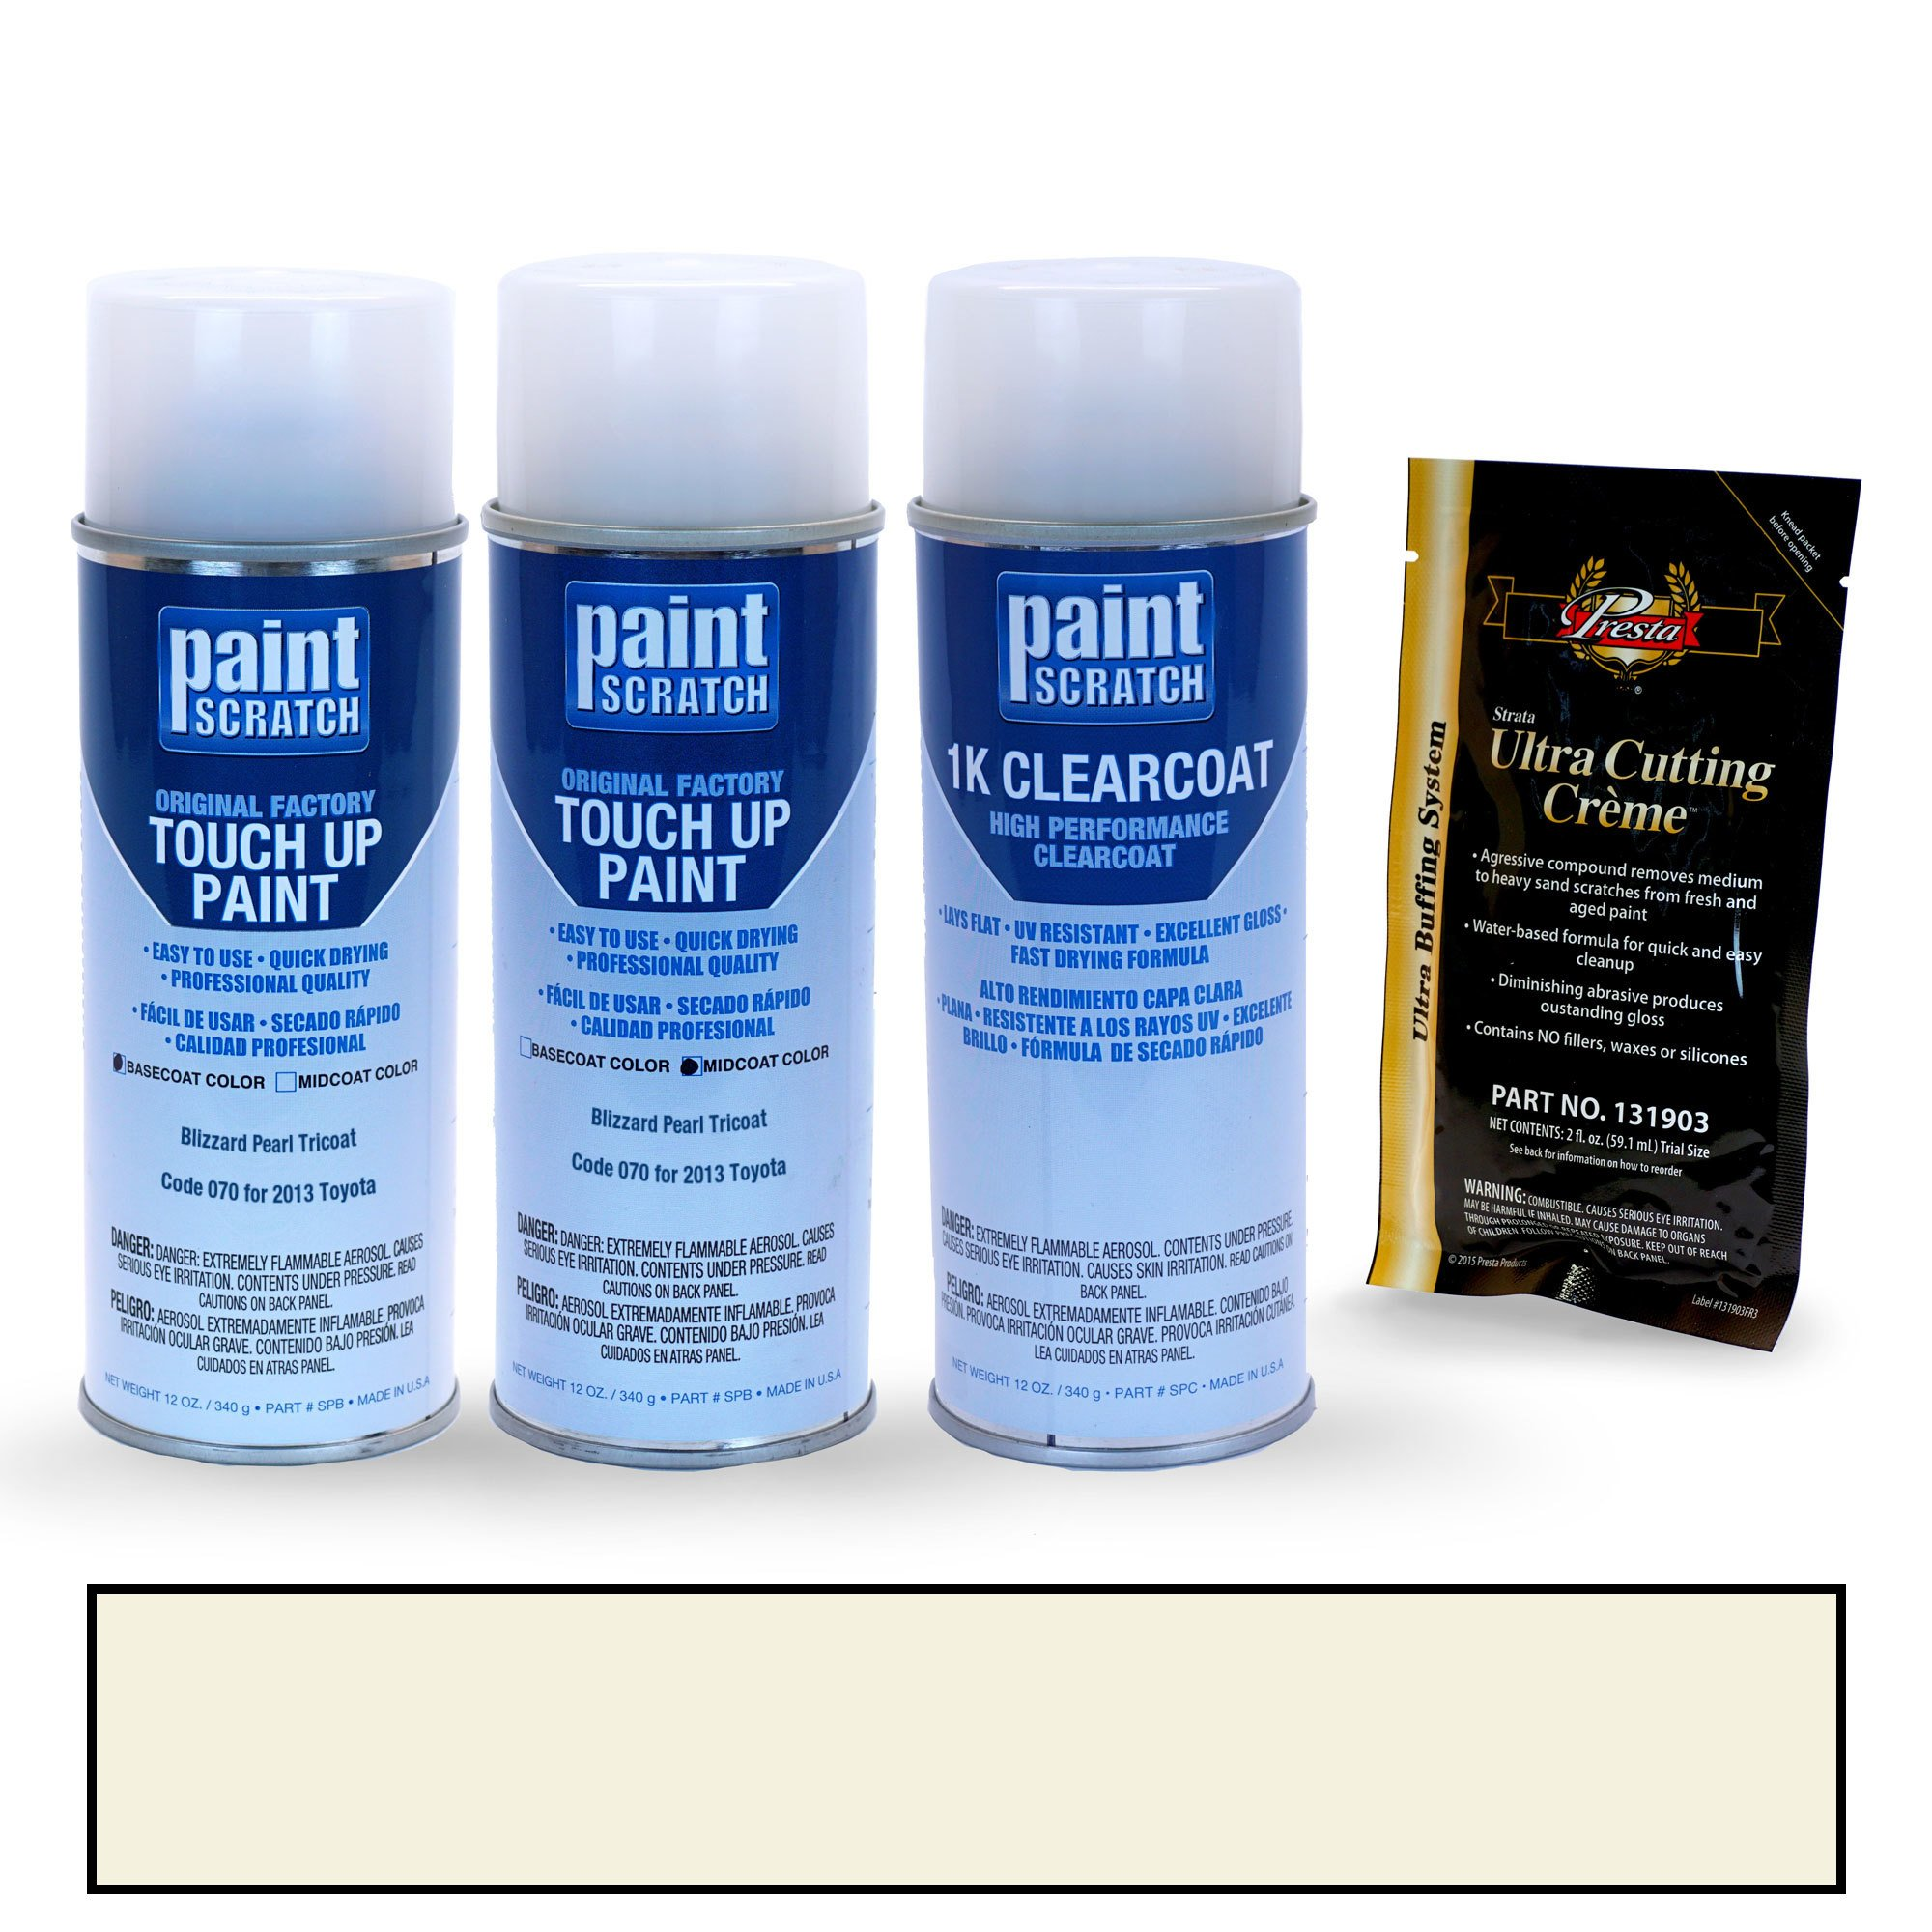 PAINTSCRATCH Blizzard Pearl Tricoat 070 for 2013 Toyota Prius - Touch Up Paint Spray Can Kit - Original Factory OEM Automotive Paint - Color Match Guaranteed